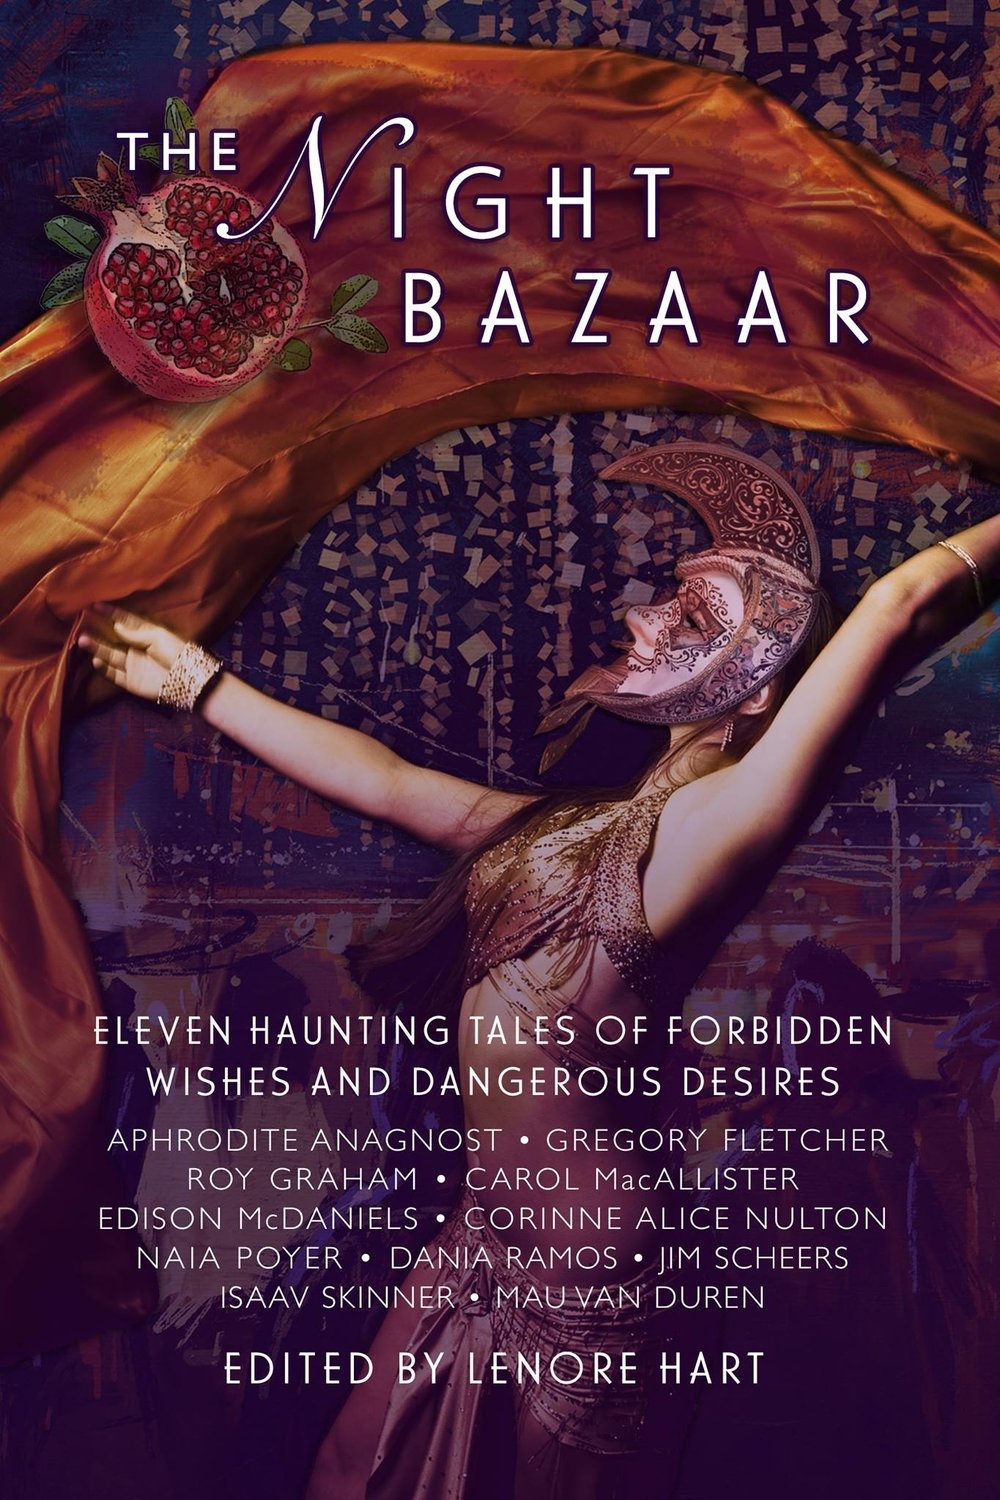 The Night Bazaar